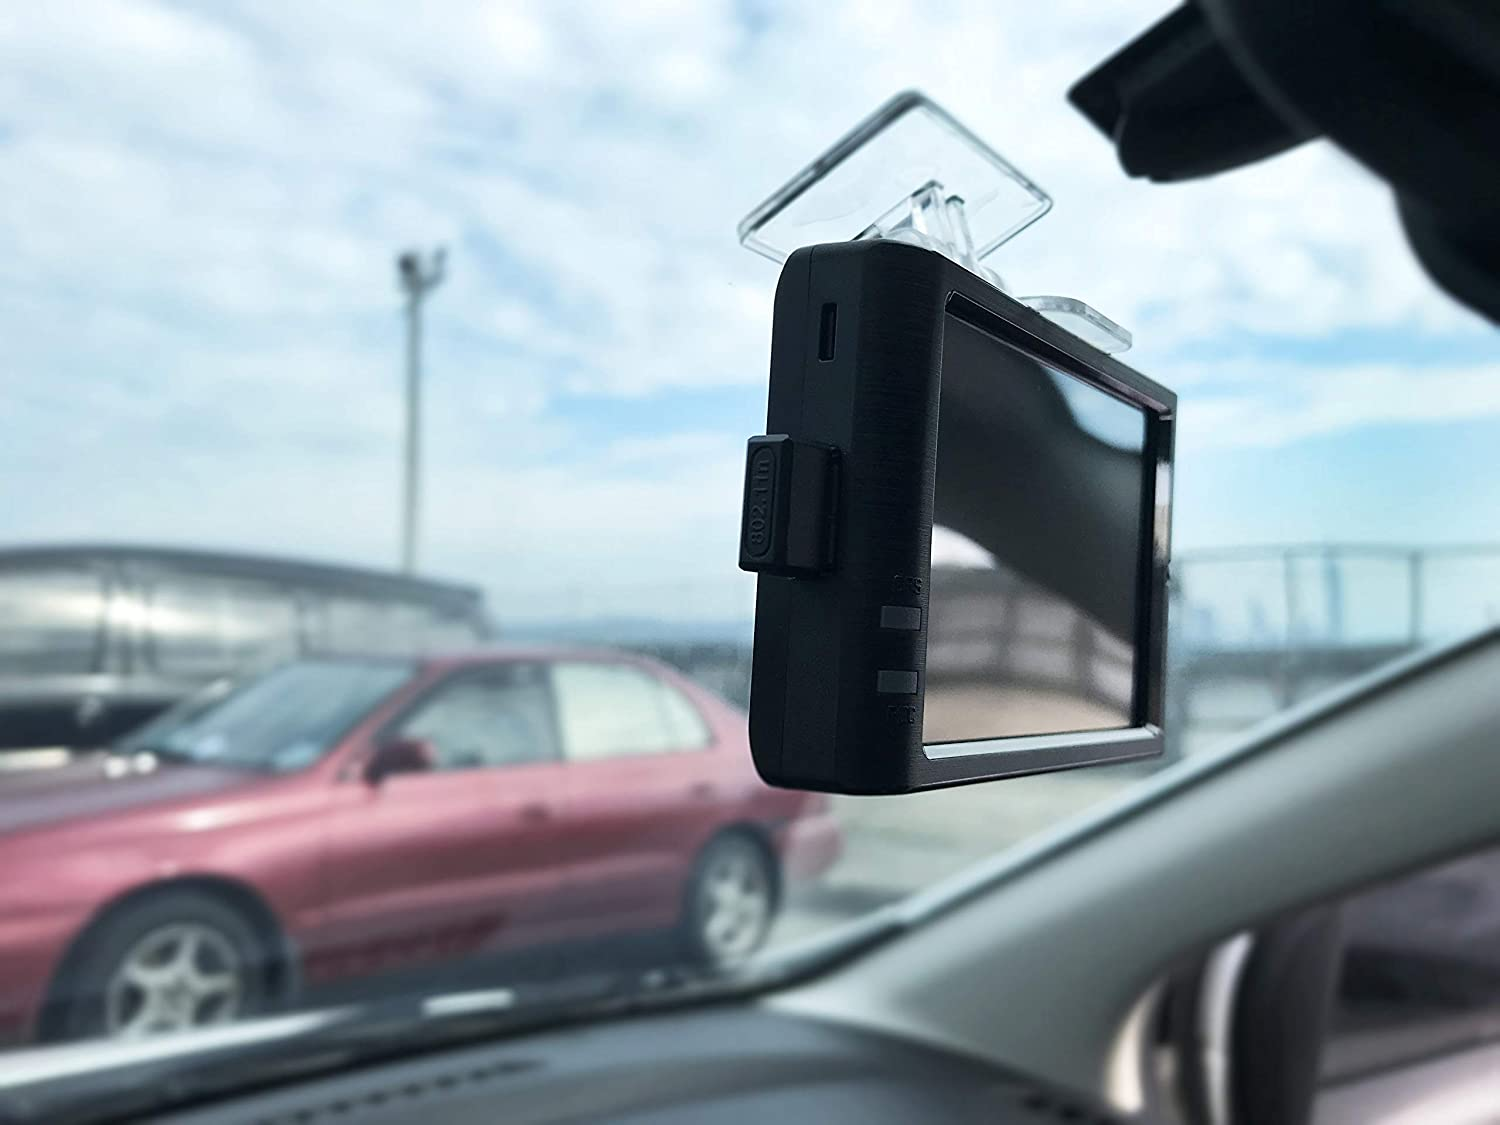 """PAPAGO GoSafe 366 Dash Cam 1080P FHD DVR Car Driving Recorder 3.5/"""" Touch Screen GS36616G Front and Rear Camera Set 16GB microSD Card Included"""